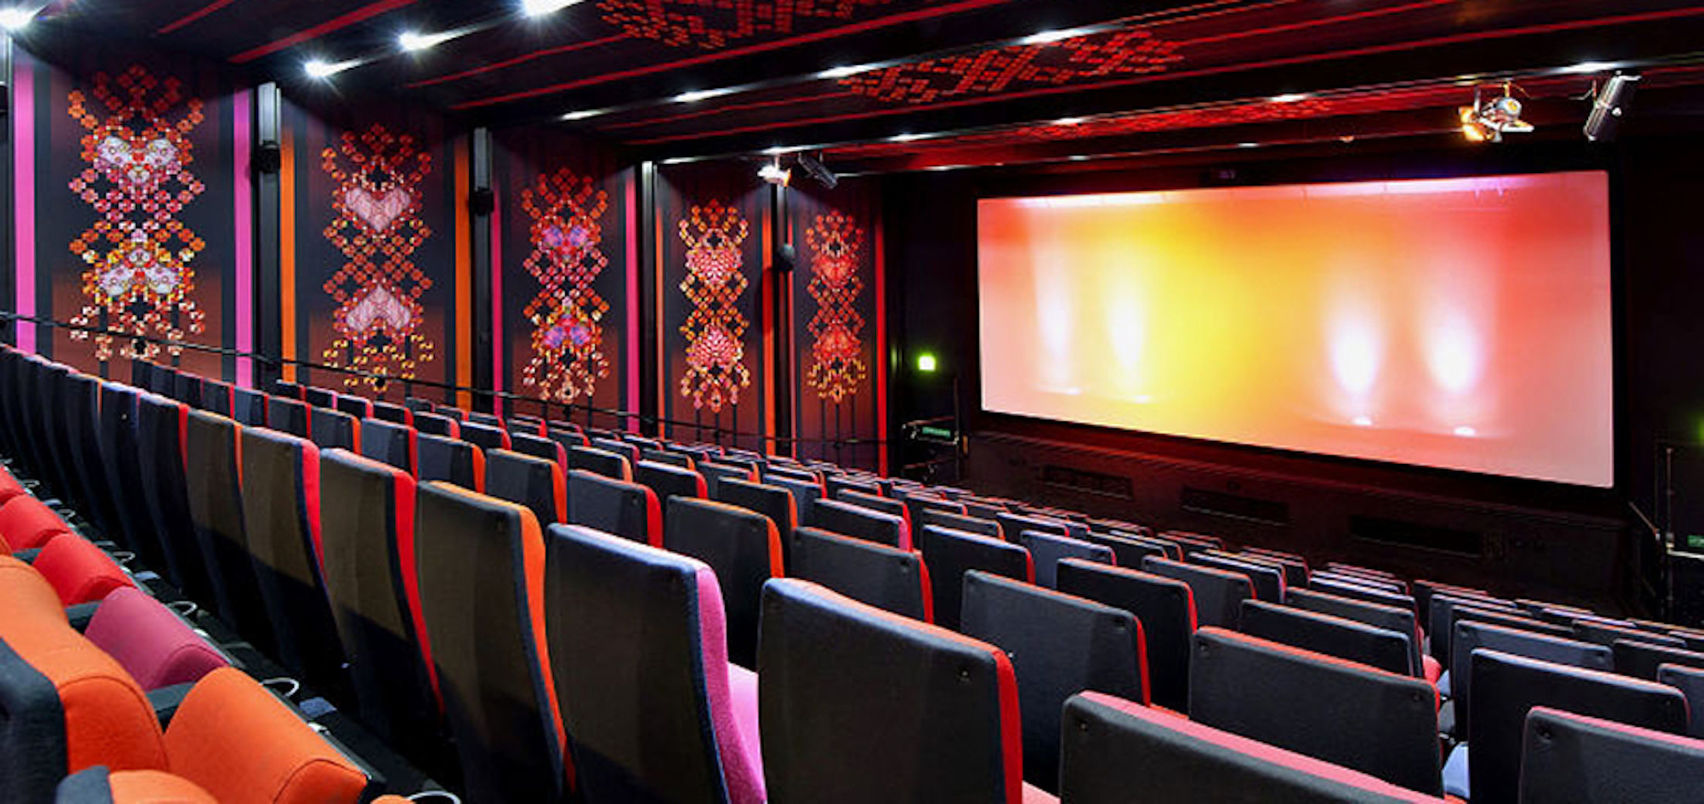 A cinema screen with red patterns on the walls